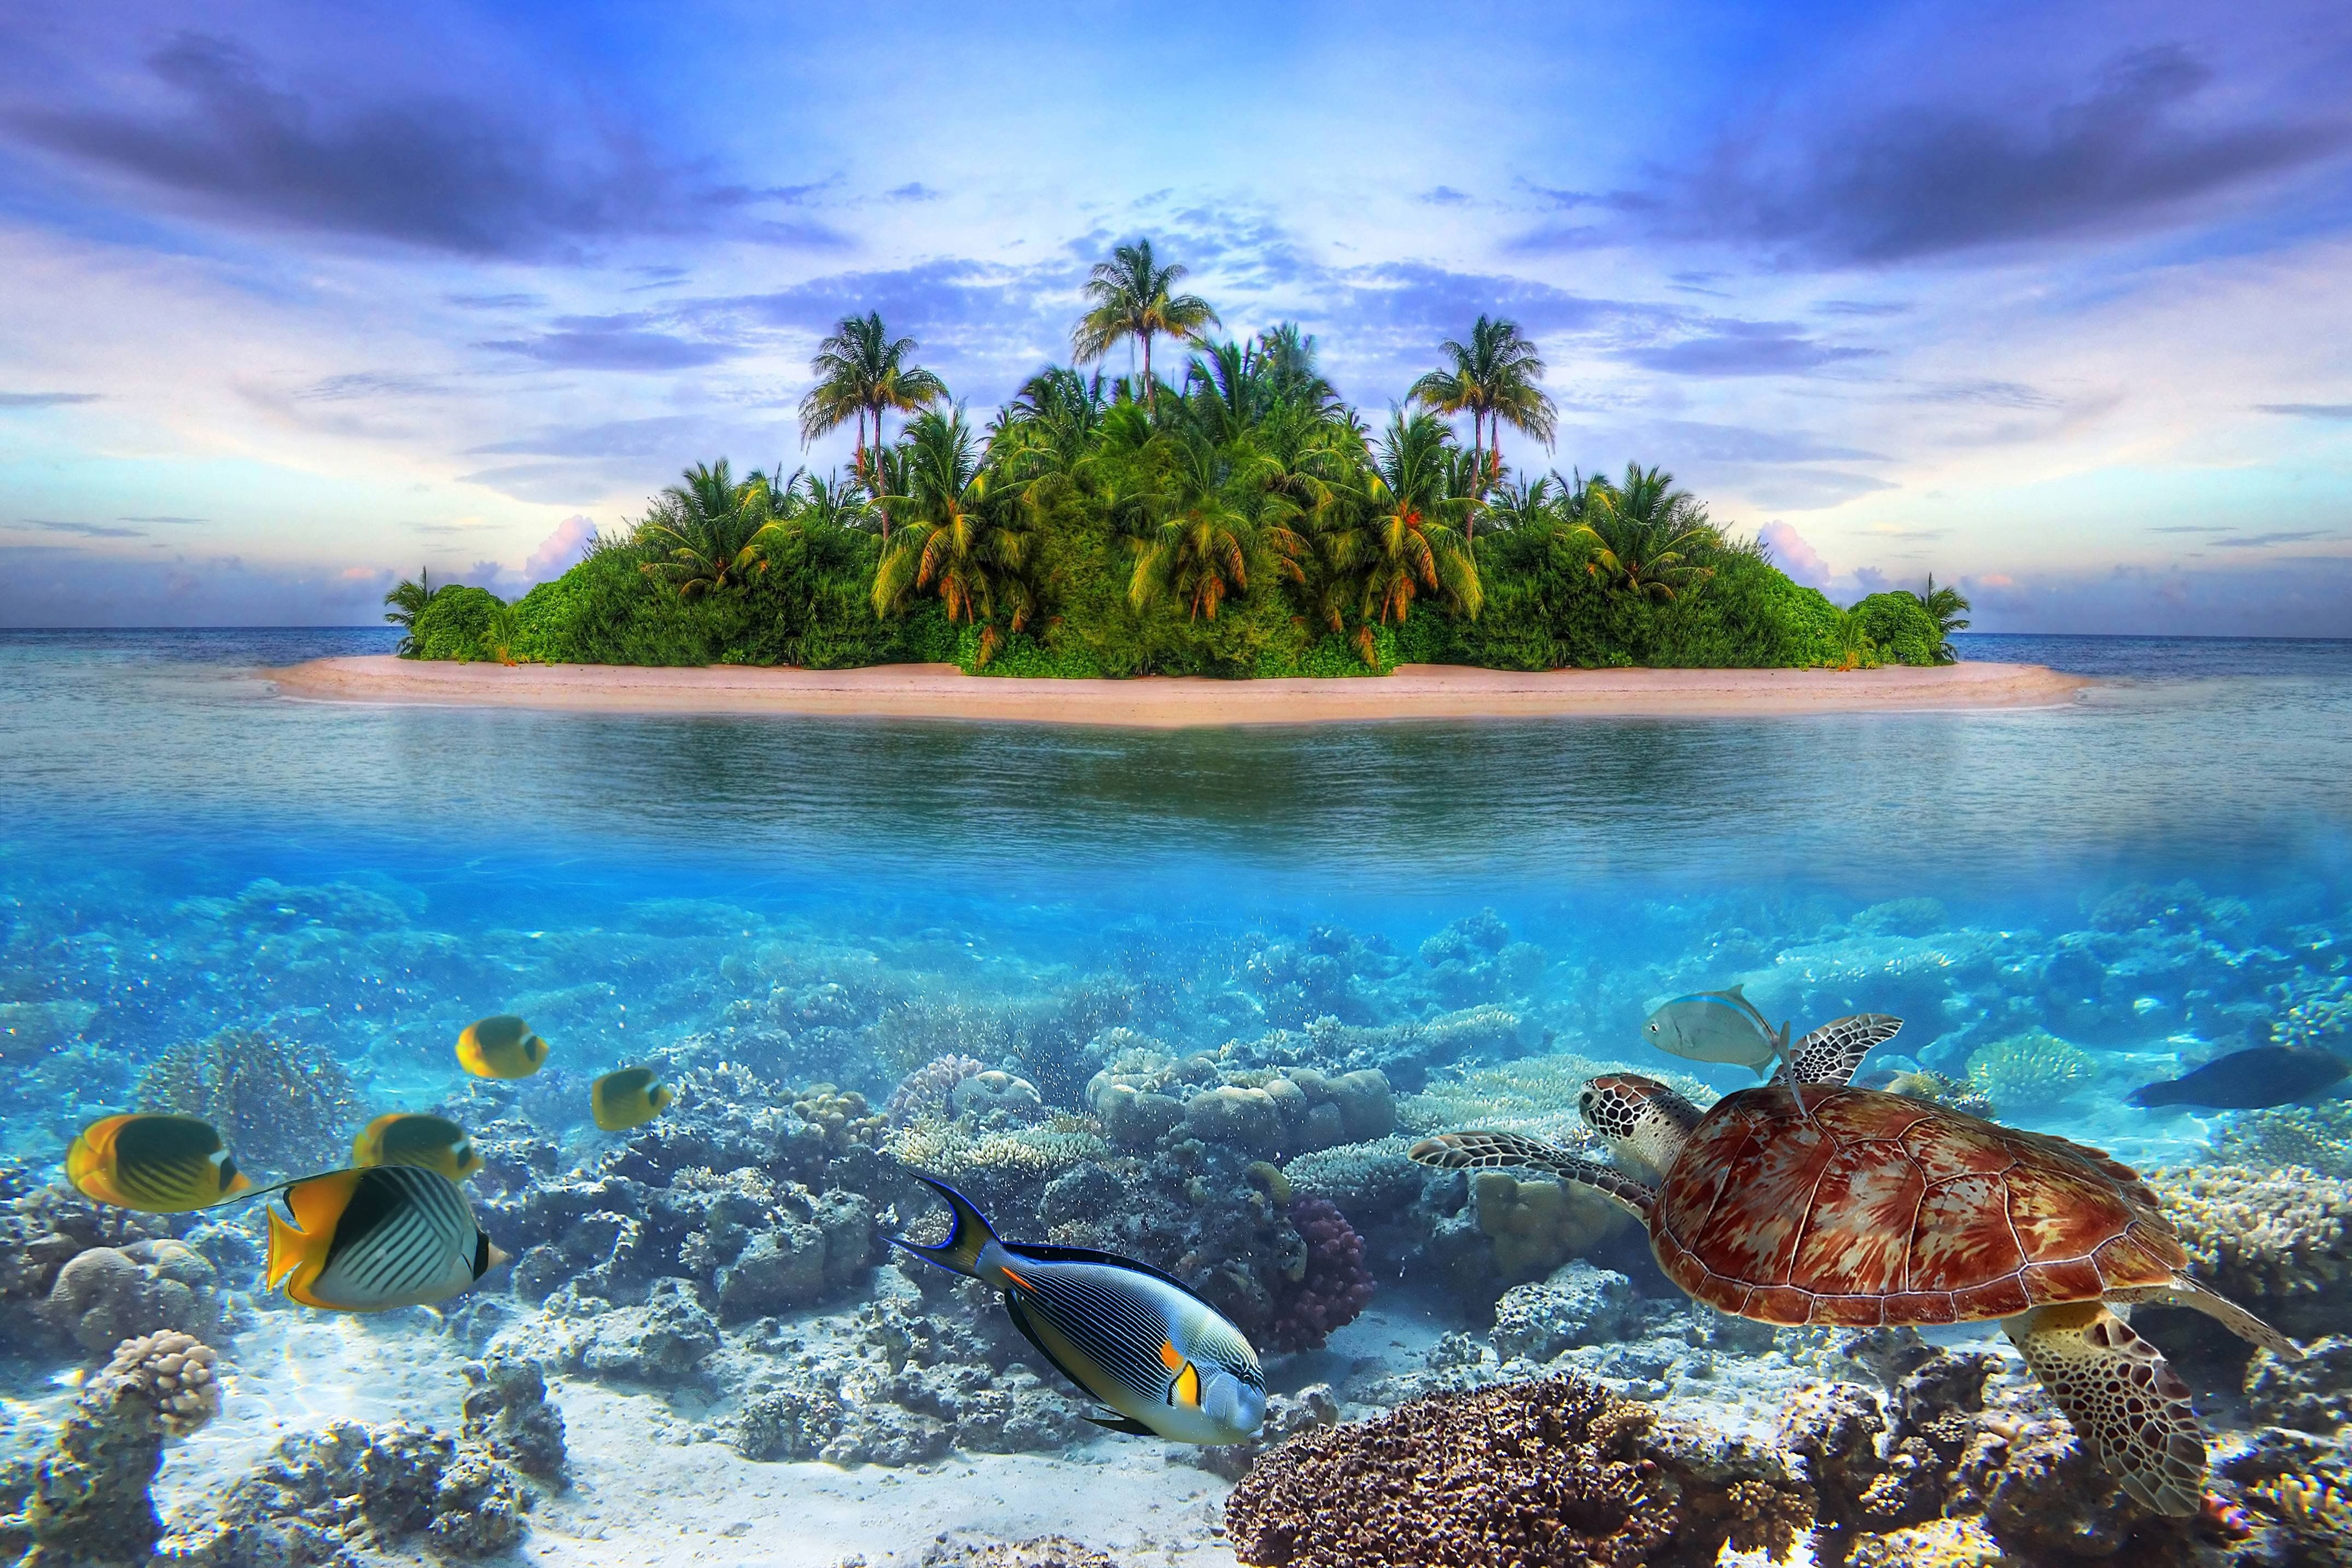 Hd Tropical Island Beach Paradise Wallpapers And Backgrounds: Pin By Kris Del Rosario On Graphic